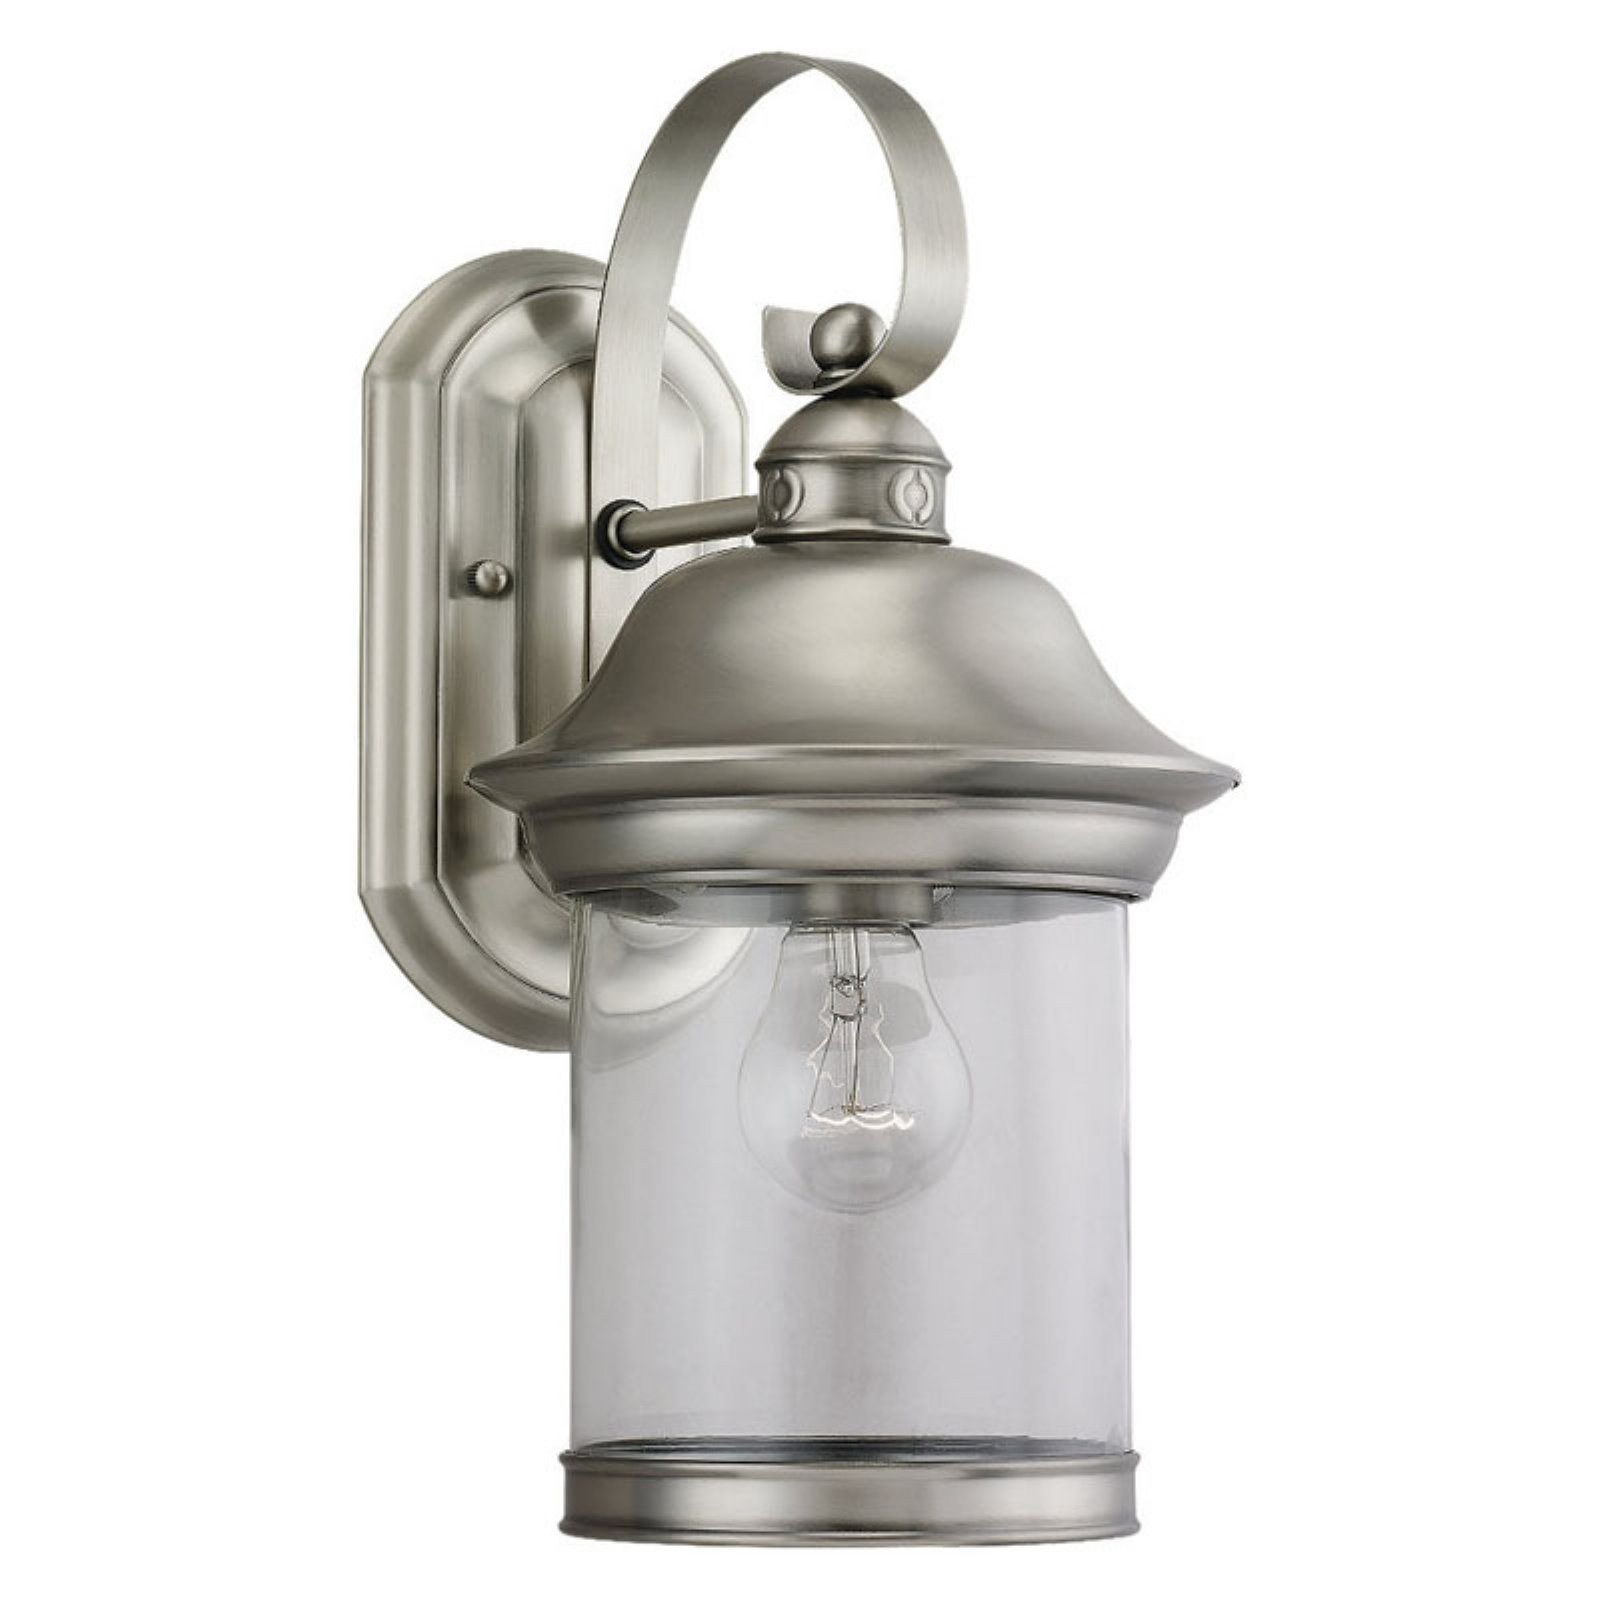 Sea Gull Hermitage Outdoor Wall Lantern - 13.5H in. Antique Brushed Nickel